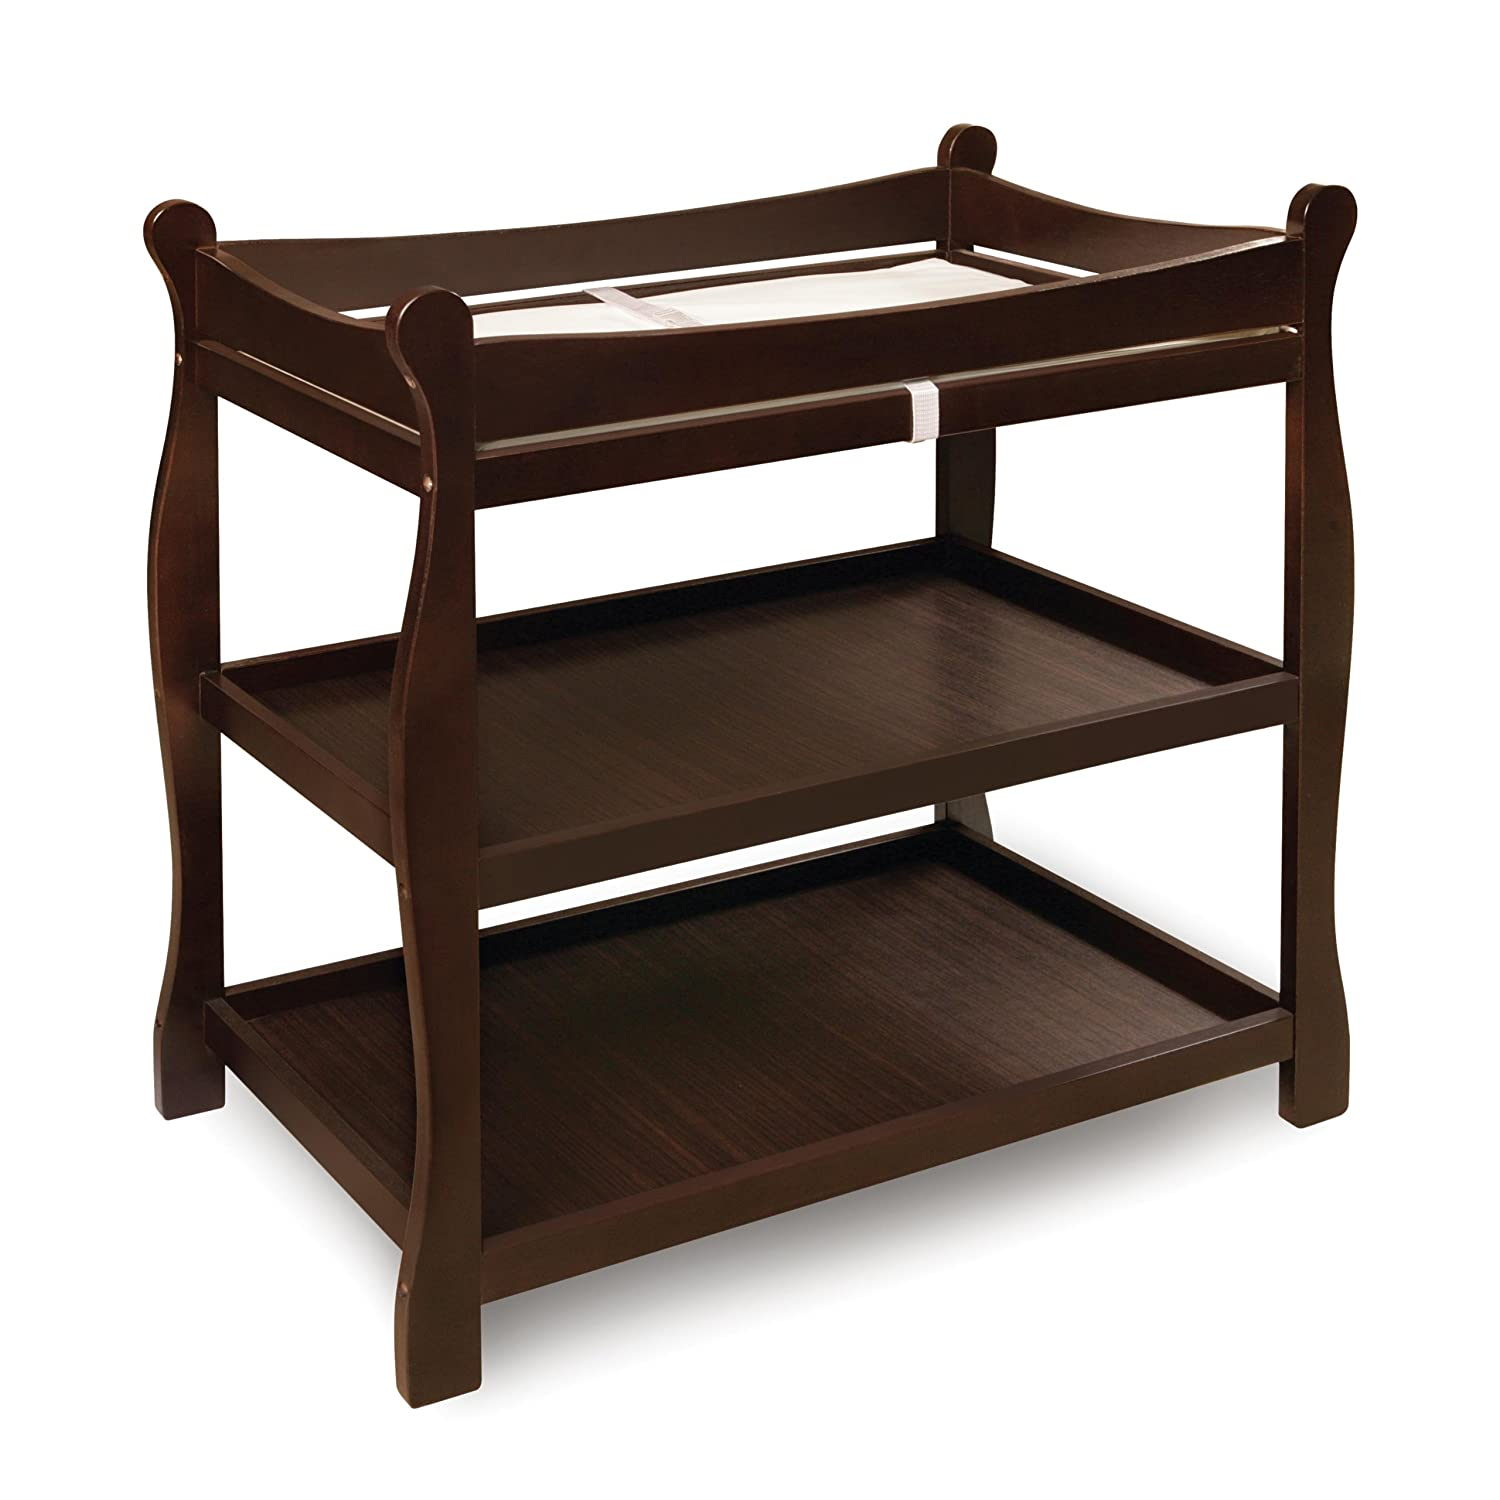 Amazon.com : Badger Basket Sleigh Style Changing Table, Espresso : Baby